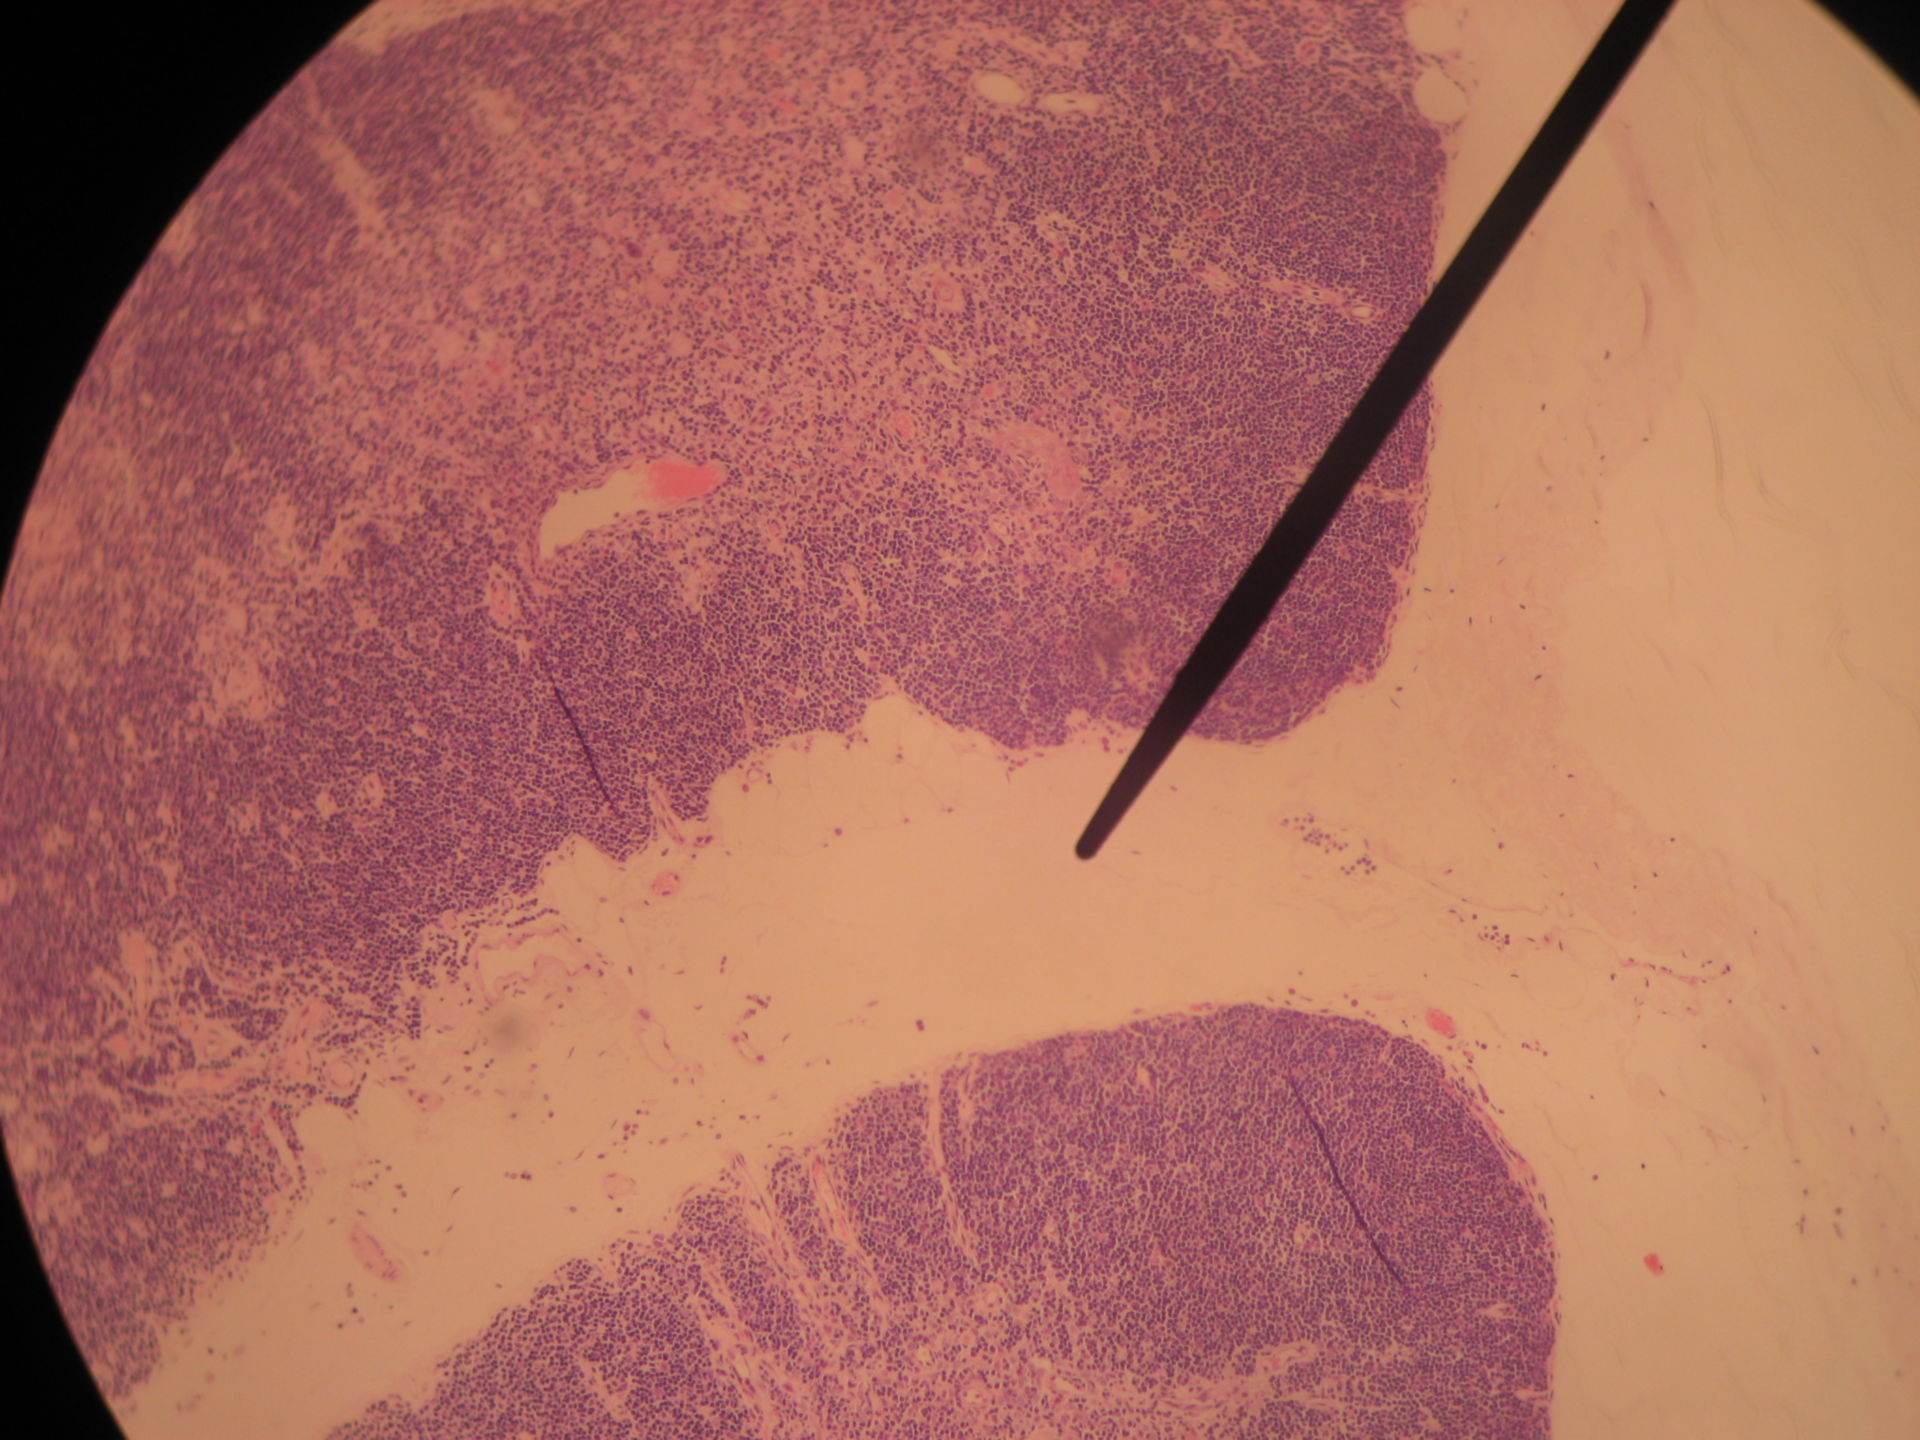 Thymus of sheep - fibrous capsule and trabecula